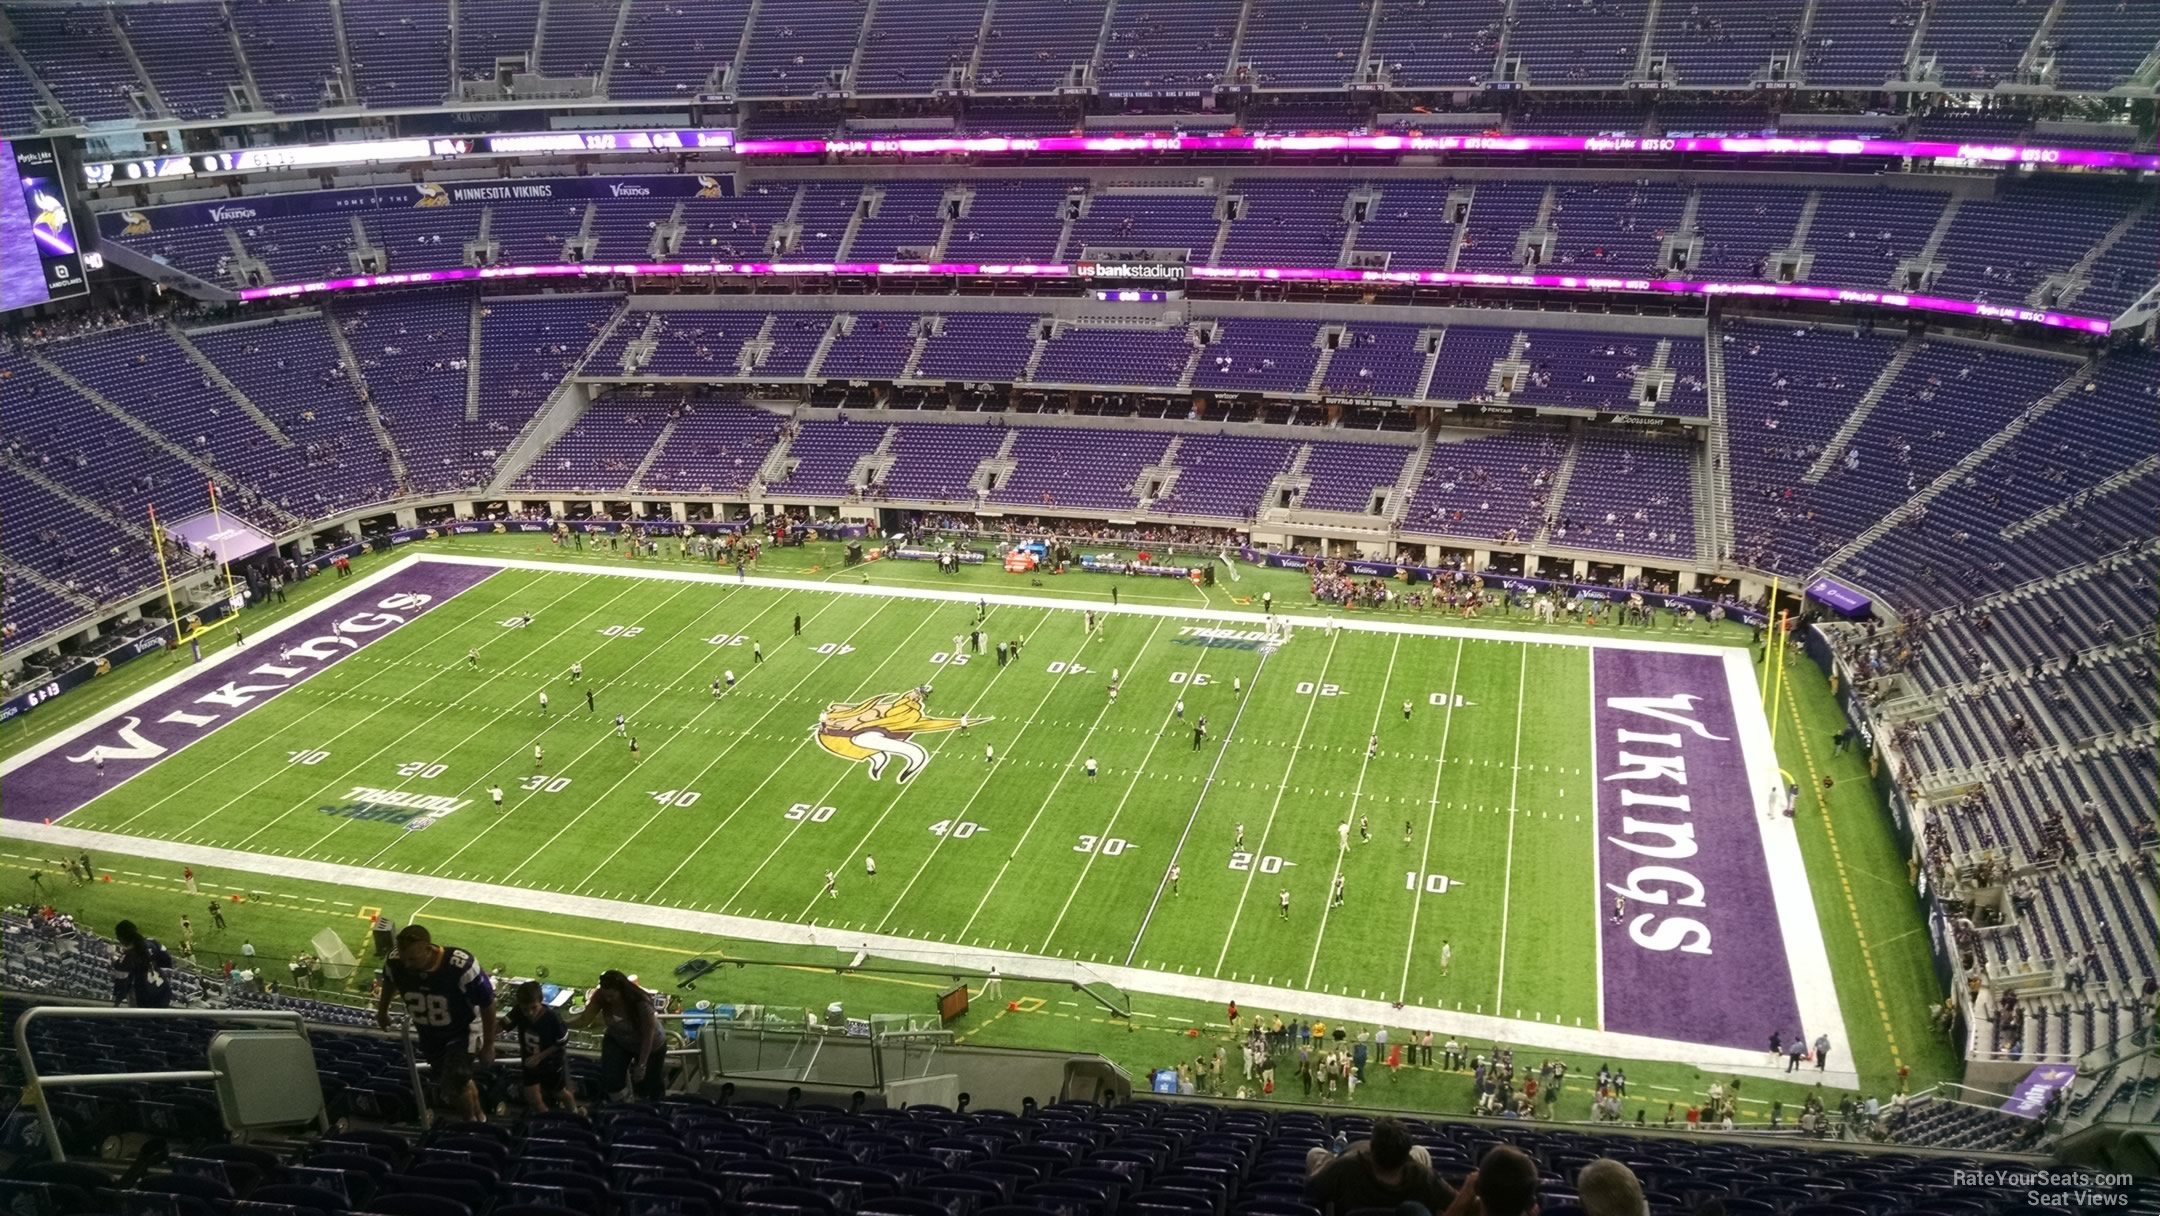 New Vikings Stadium Seating Map Brokeasshome Com